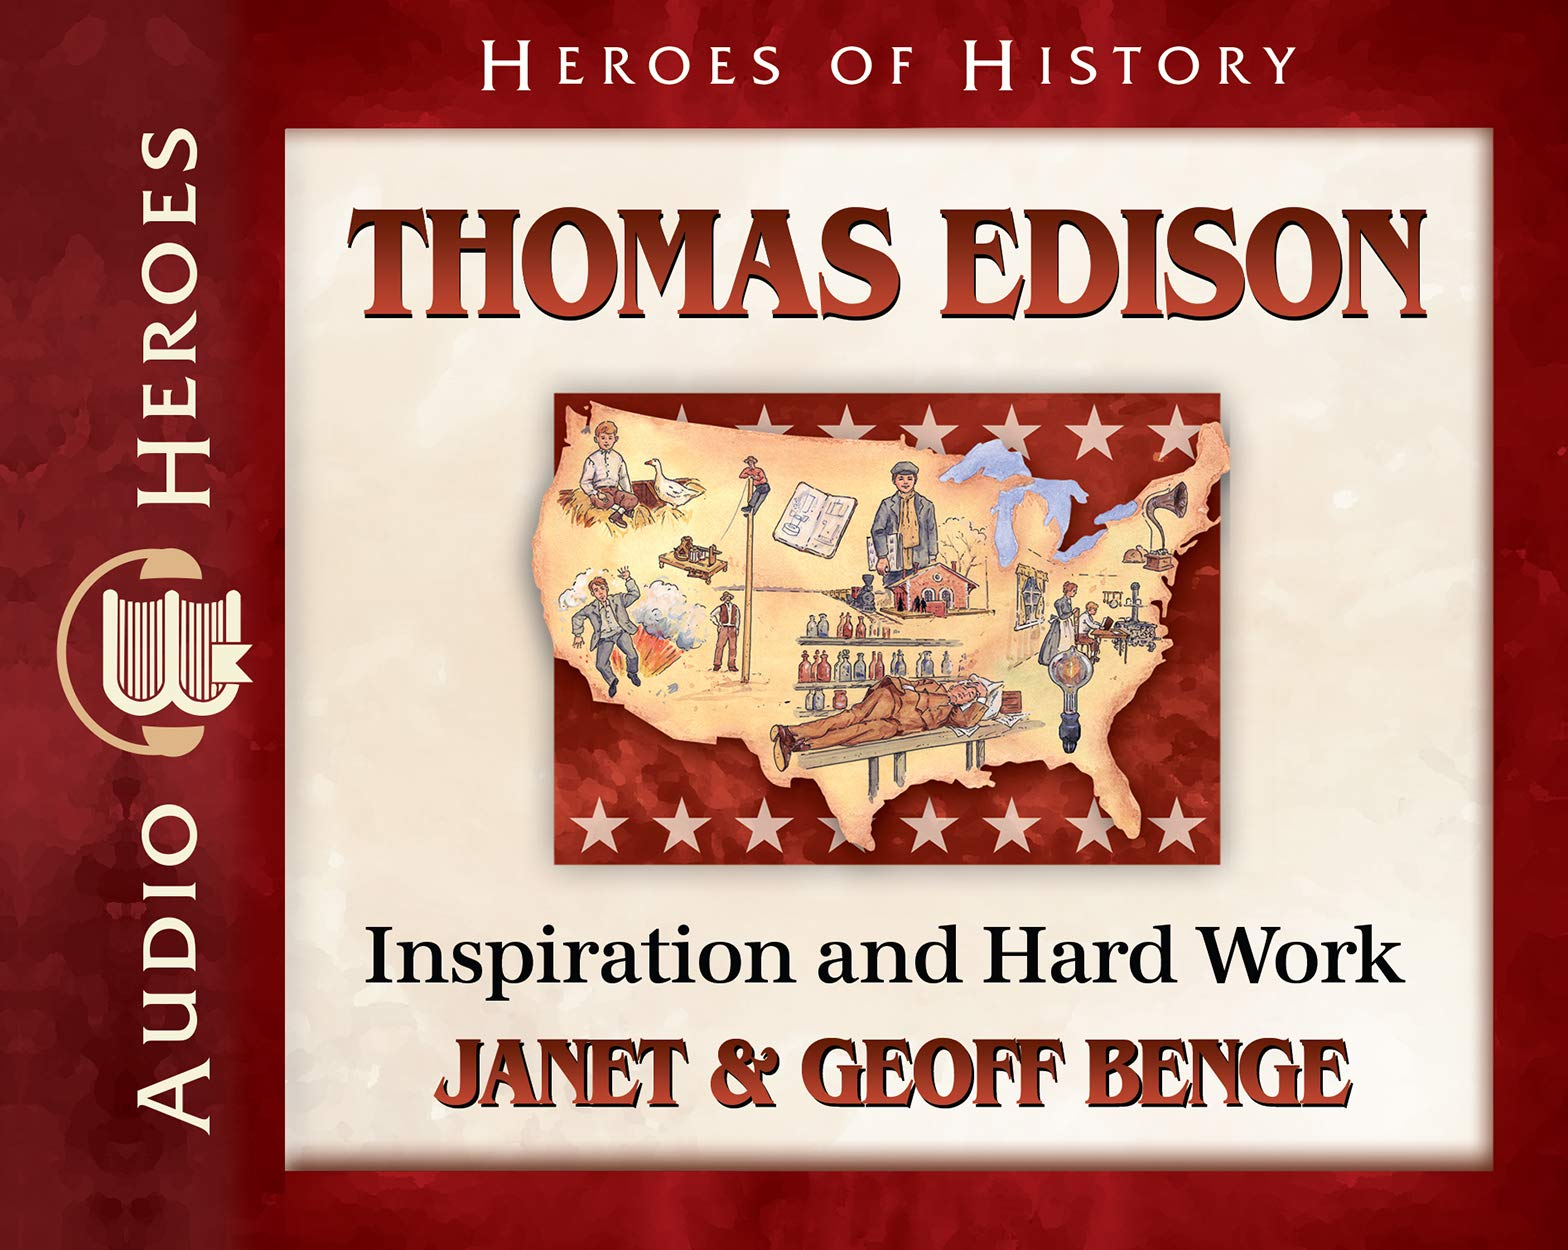 Download Thomas Edison Audiobook: Inspiration and Hard Work (Heroes of History) pdf